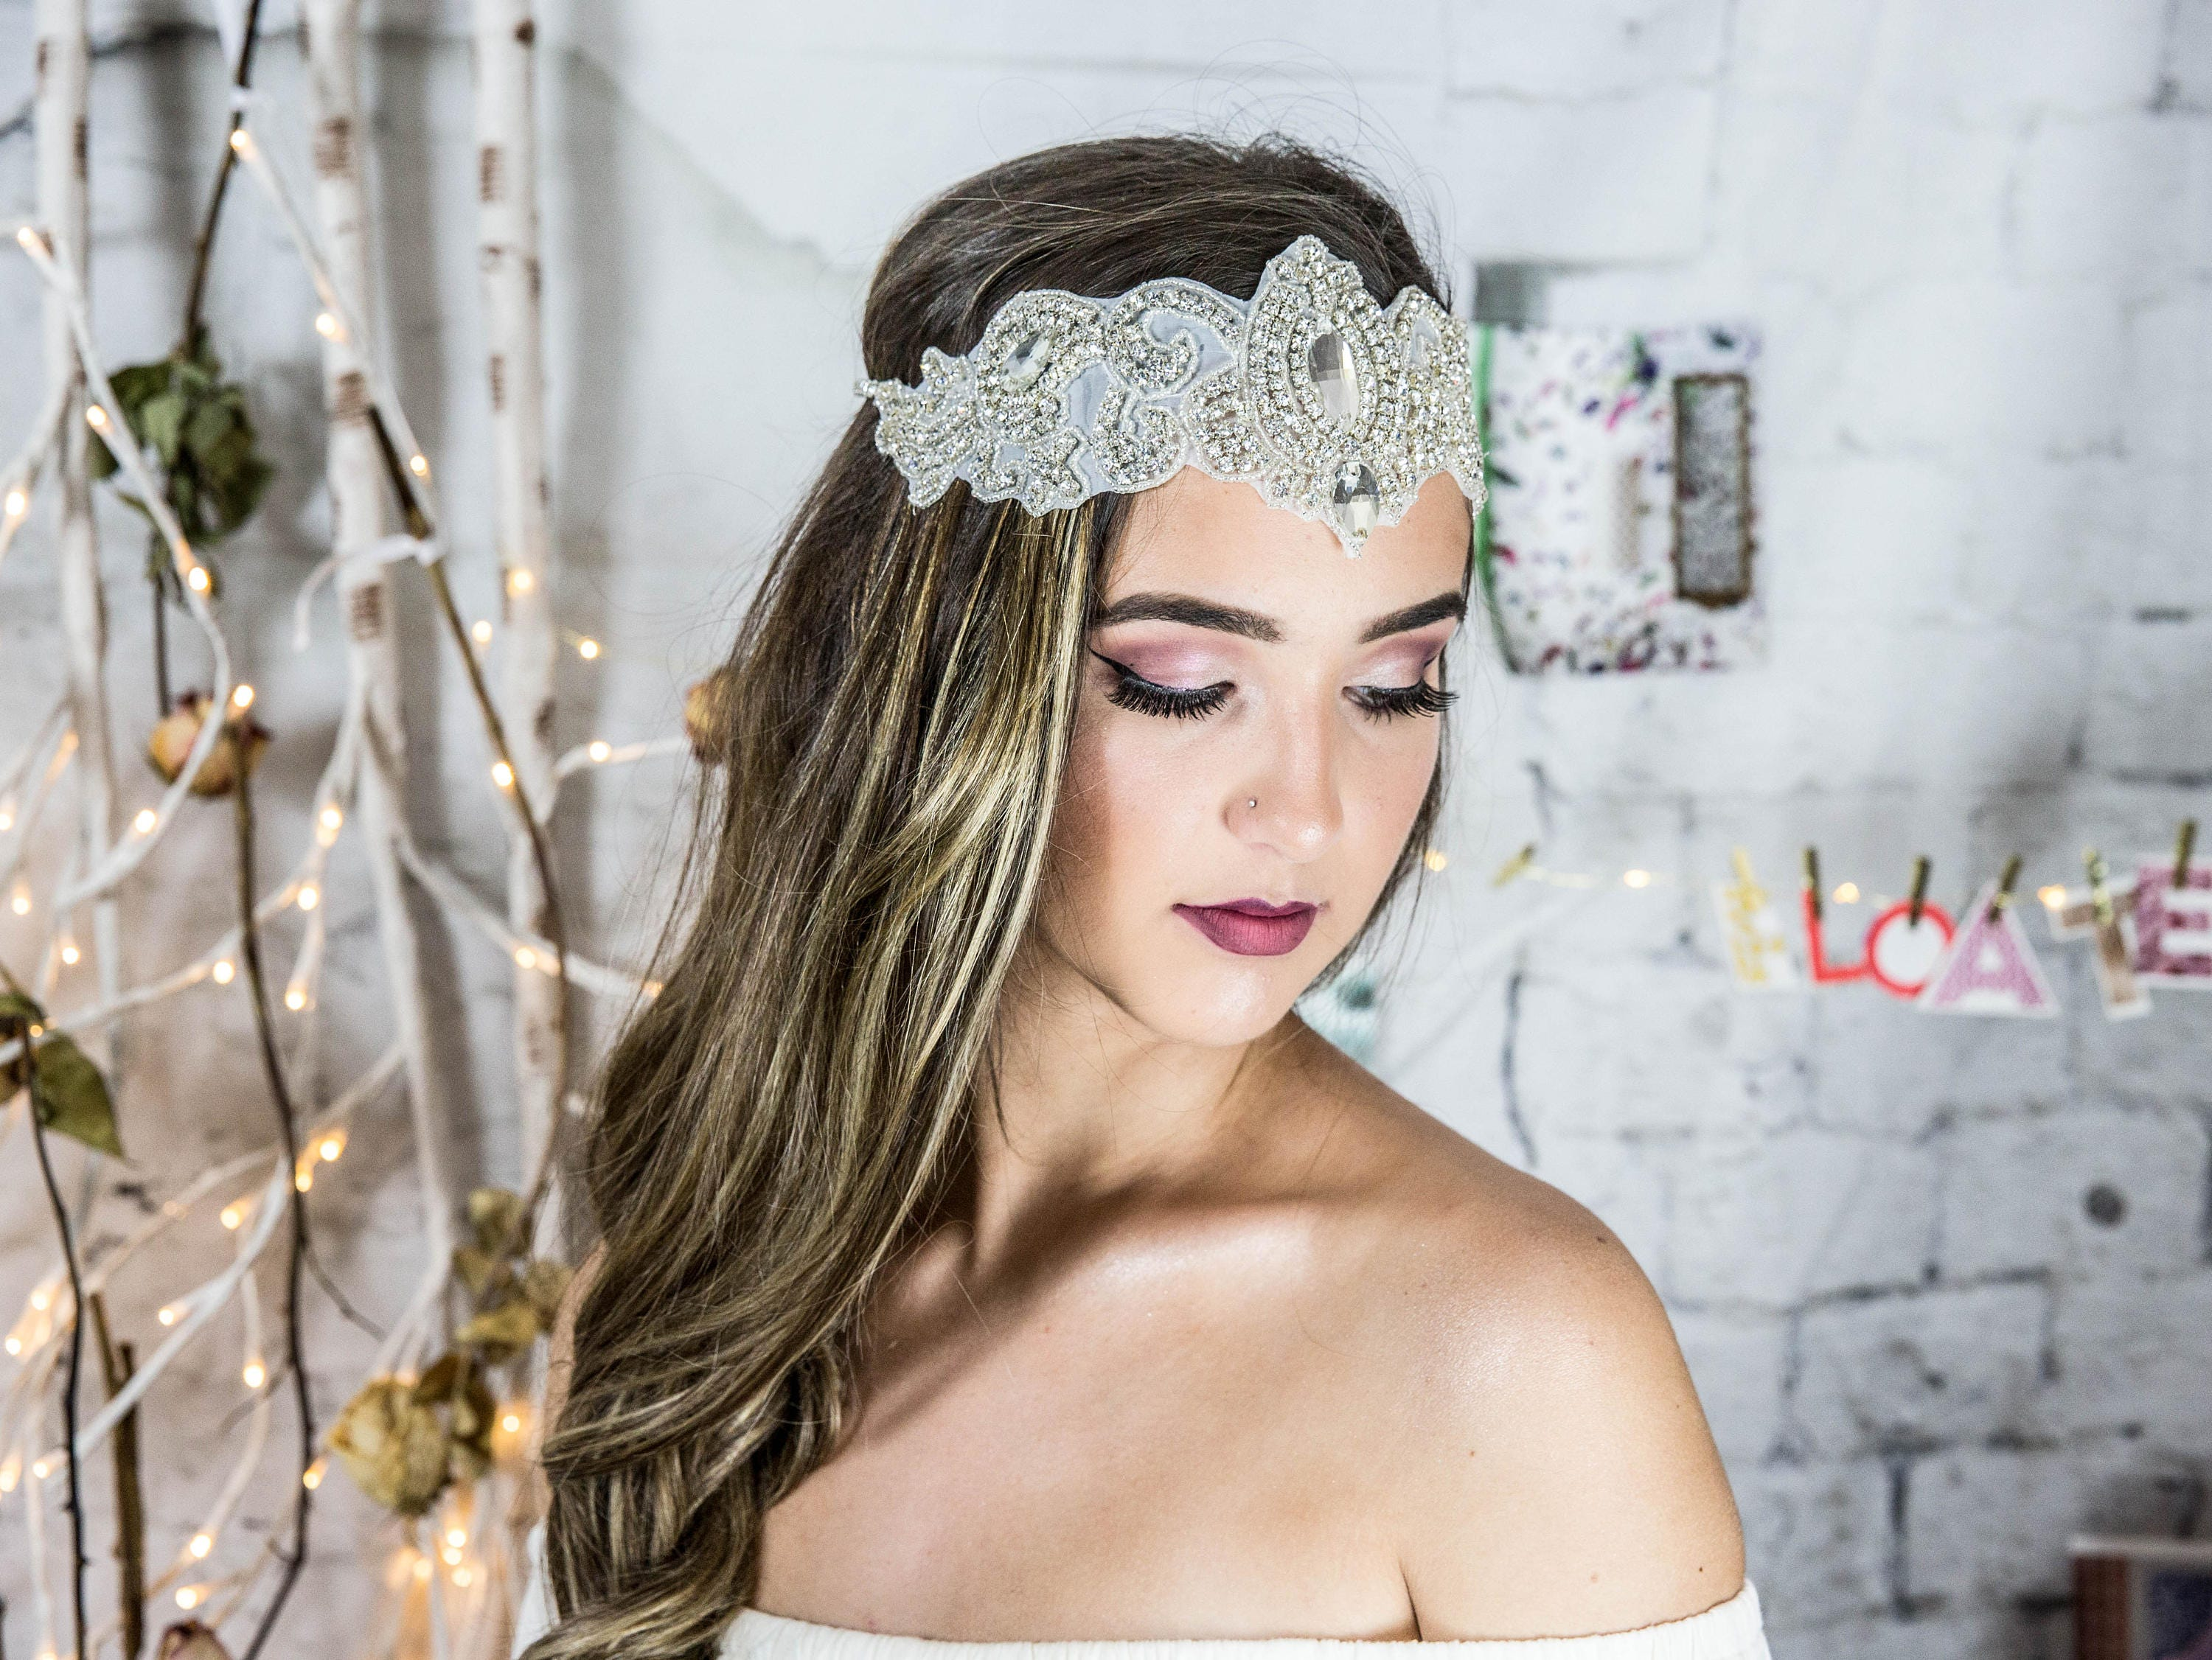 Boho Bridal Headband Statement Headpiece Crystal Head Chain Gatsby Hair Jewelry Beach Wedding Accessories With Crystals